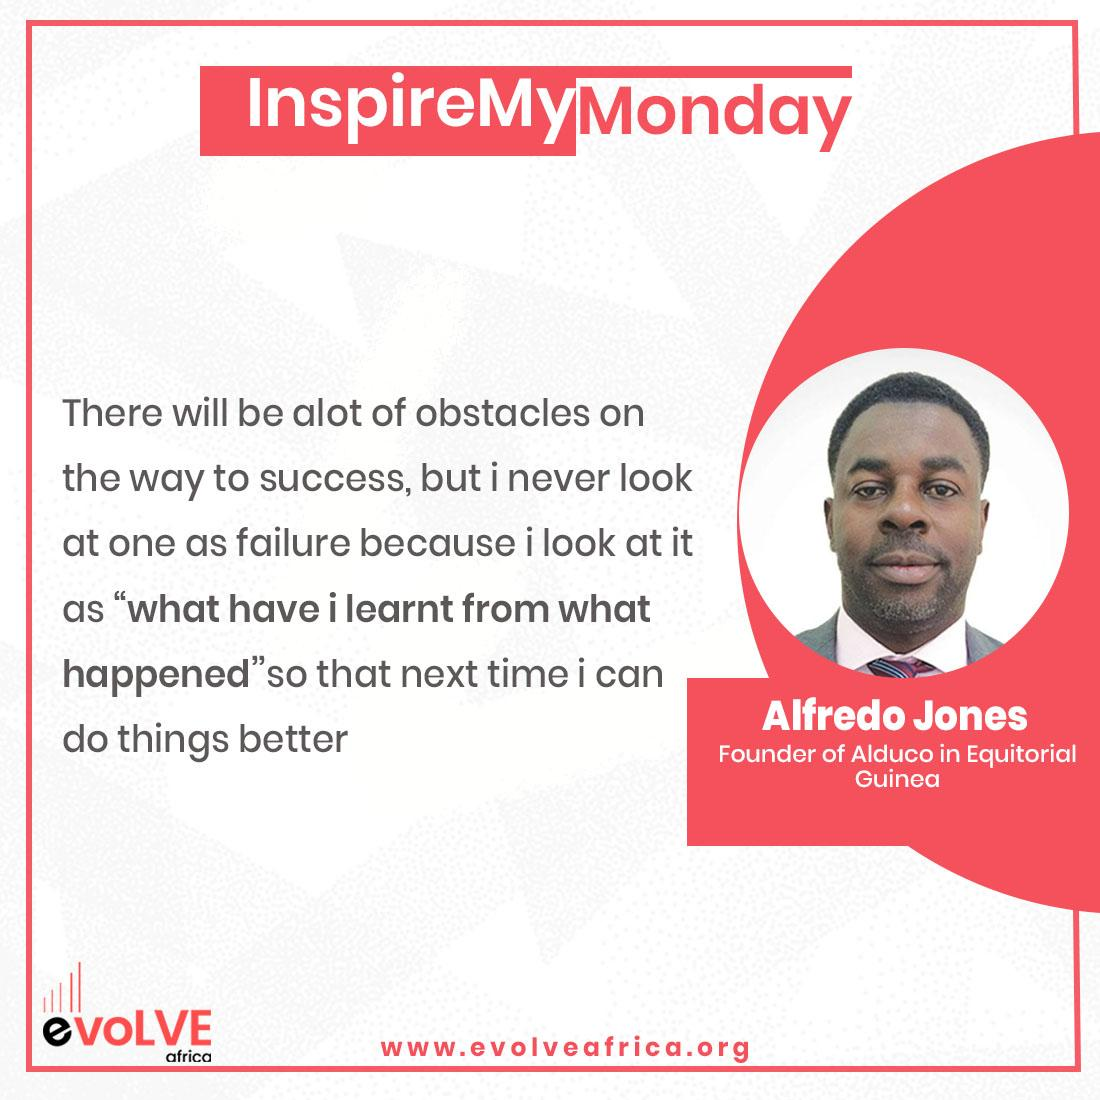 Worrying about the consequences of an obstacle pulls you out of your present power and creates unnecessary drama.  The only way to overcome a crisis is by going through it, not around it.  #InspireMyMonday #EvolveAfrica #AlfredoJones #Resilience  #MondayMotivation #Success